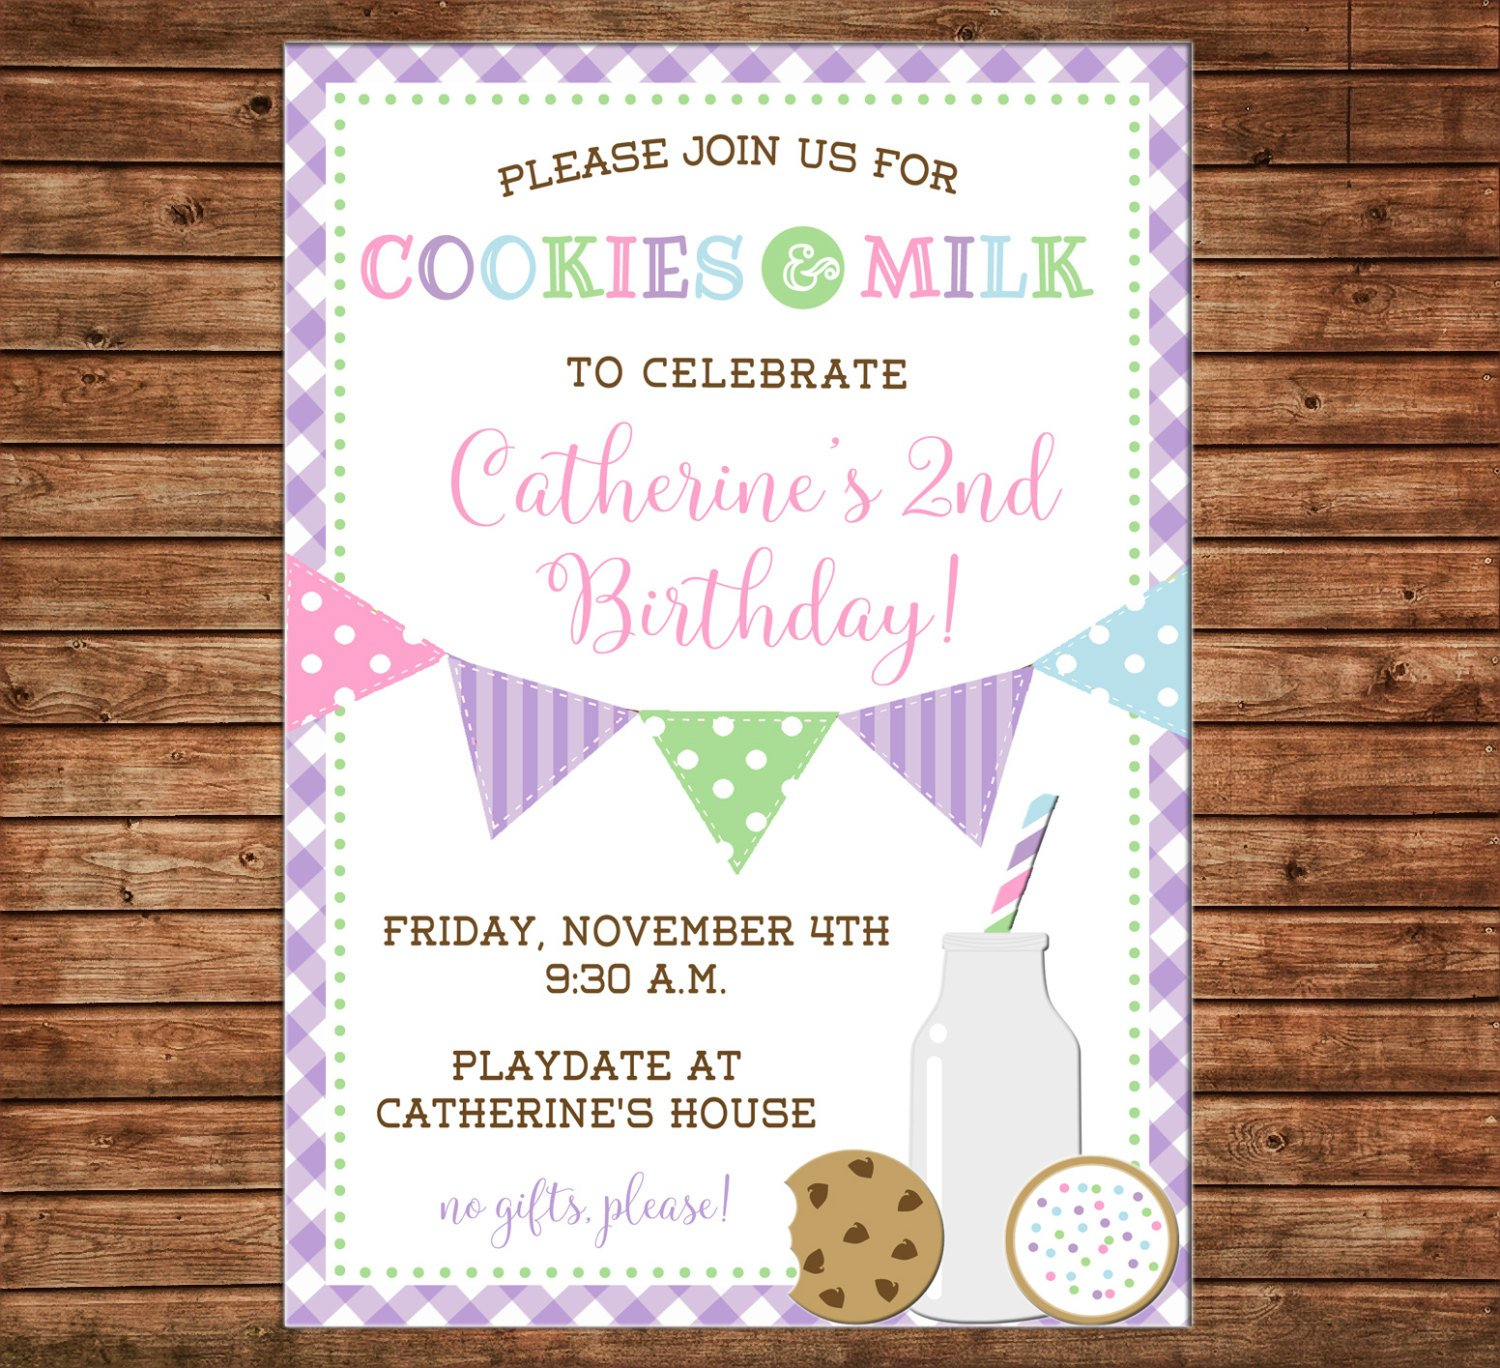 Boy Or Girl Invitation Cookies And Milk Playdate Birthday Party - Can - Play Date Invitations Free Printable